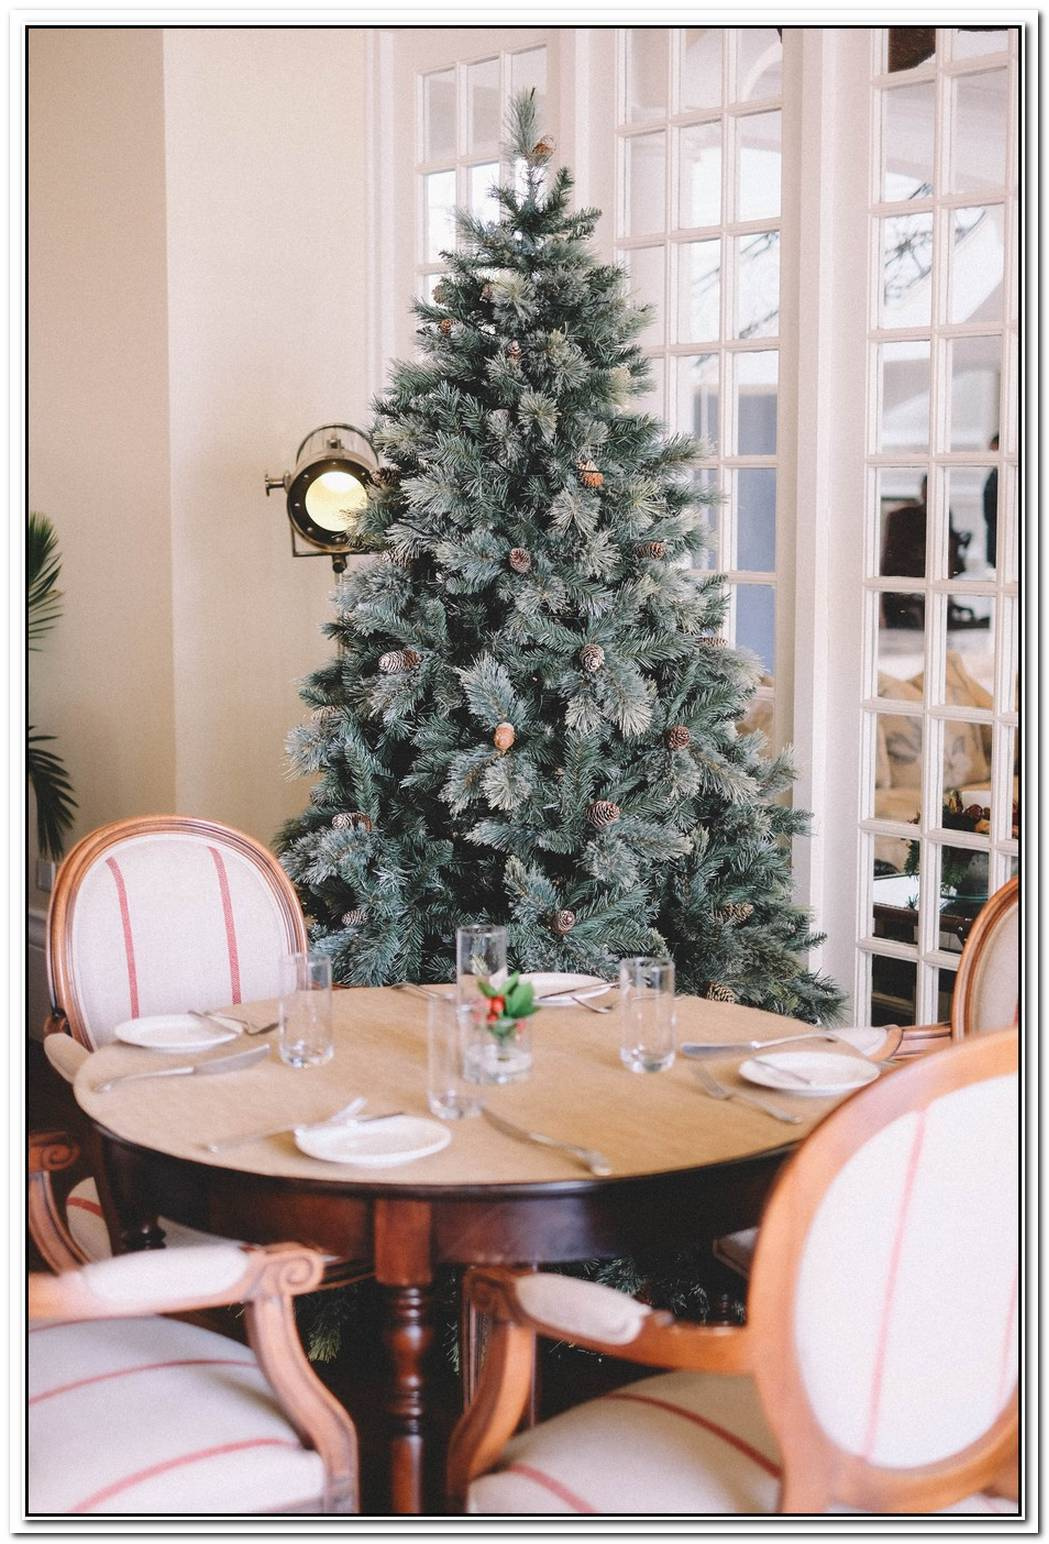 Style Up Your Home This Christmas